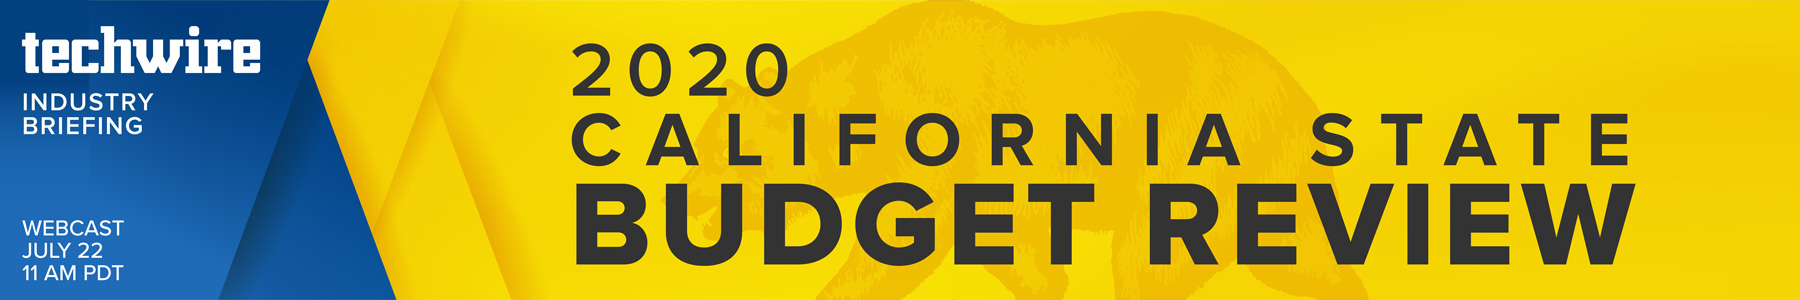 Techwire Industry Briefing: 2020 California State Budget Review